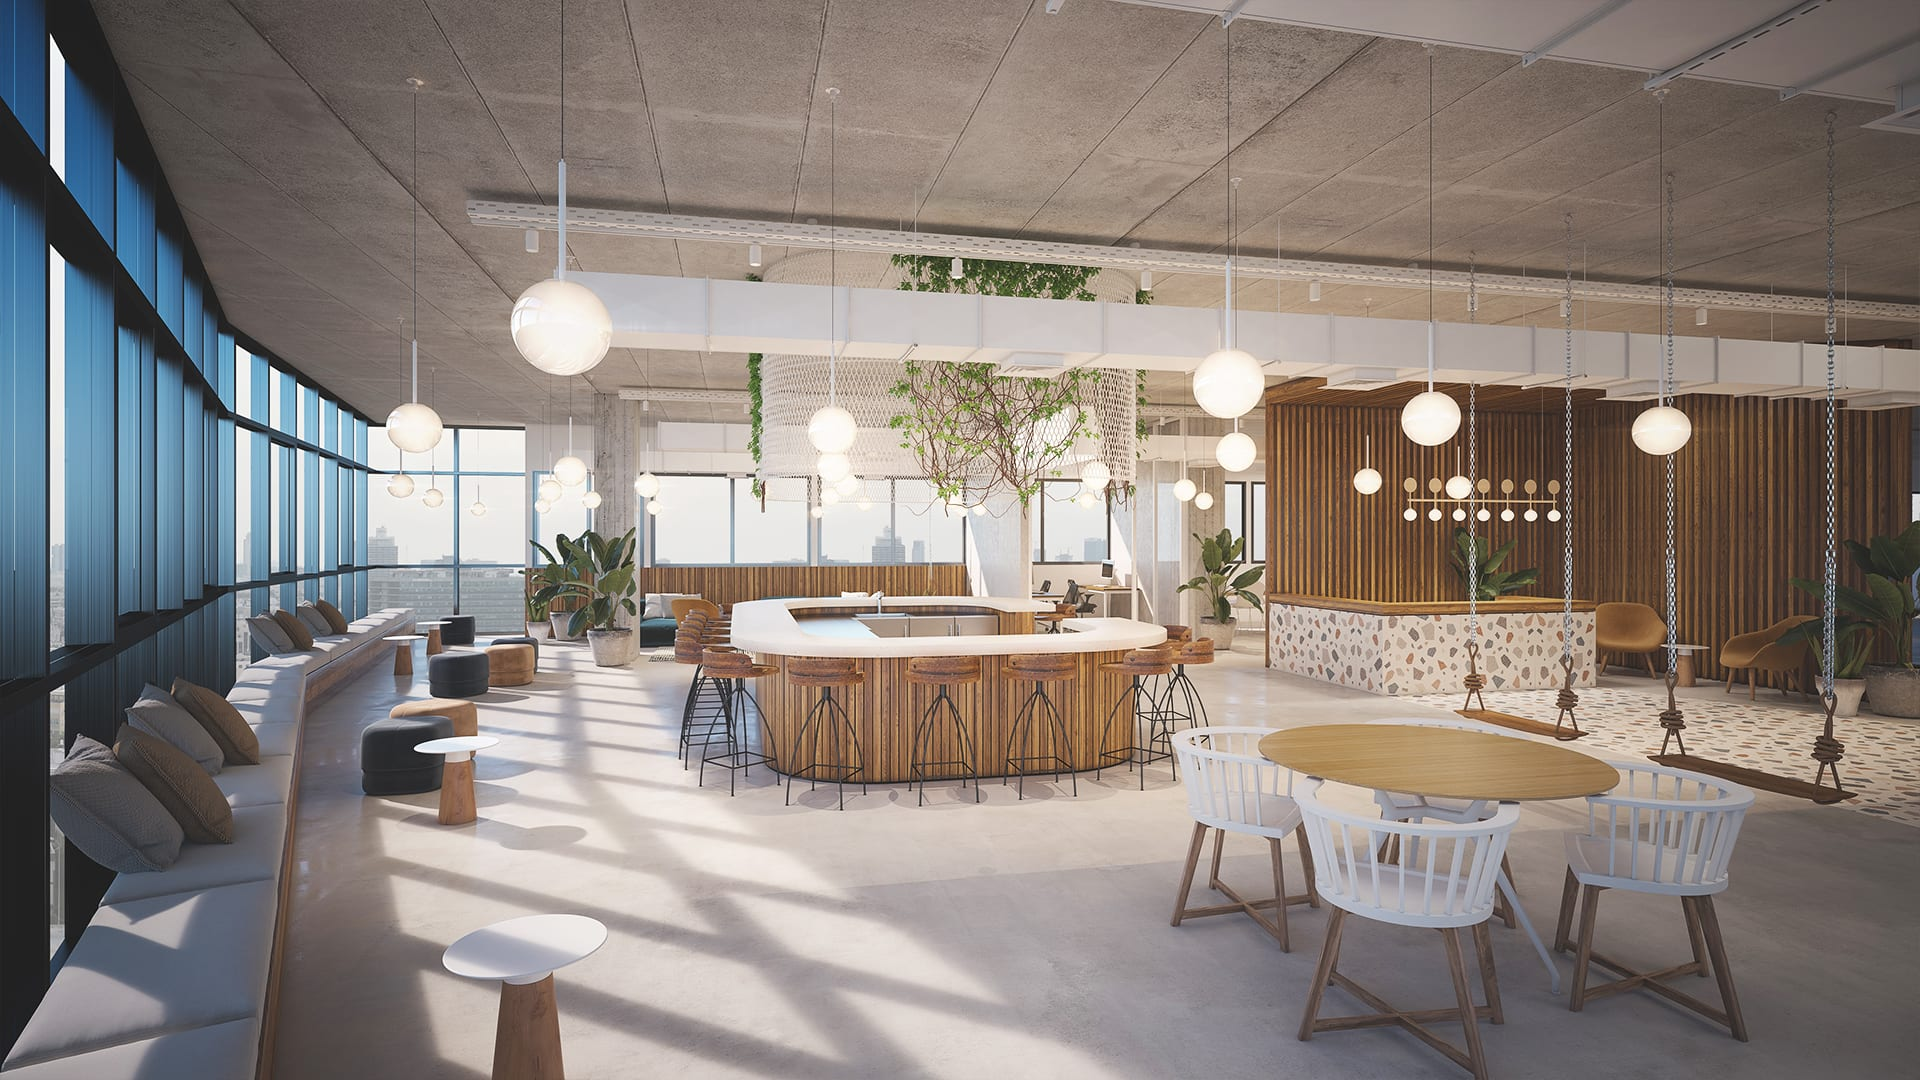 Maayan-Golan_Architectural-Visualization_interior-design-visualization_office-space_open-space_switchup_06